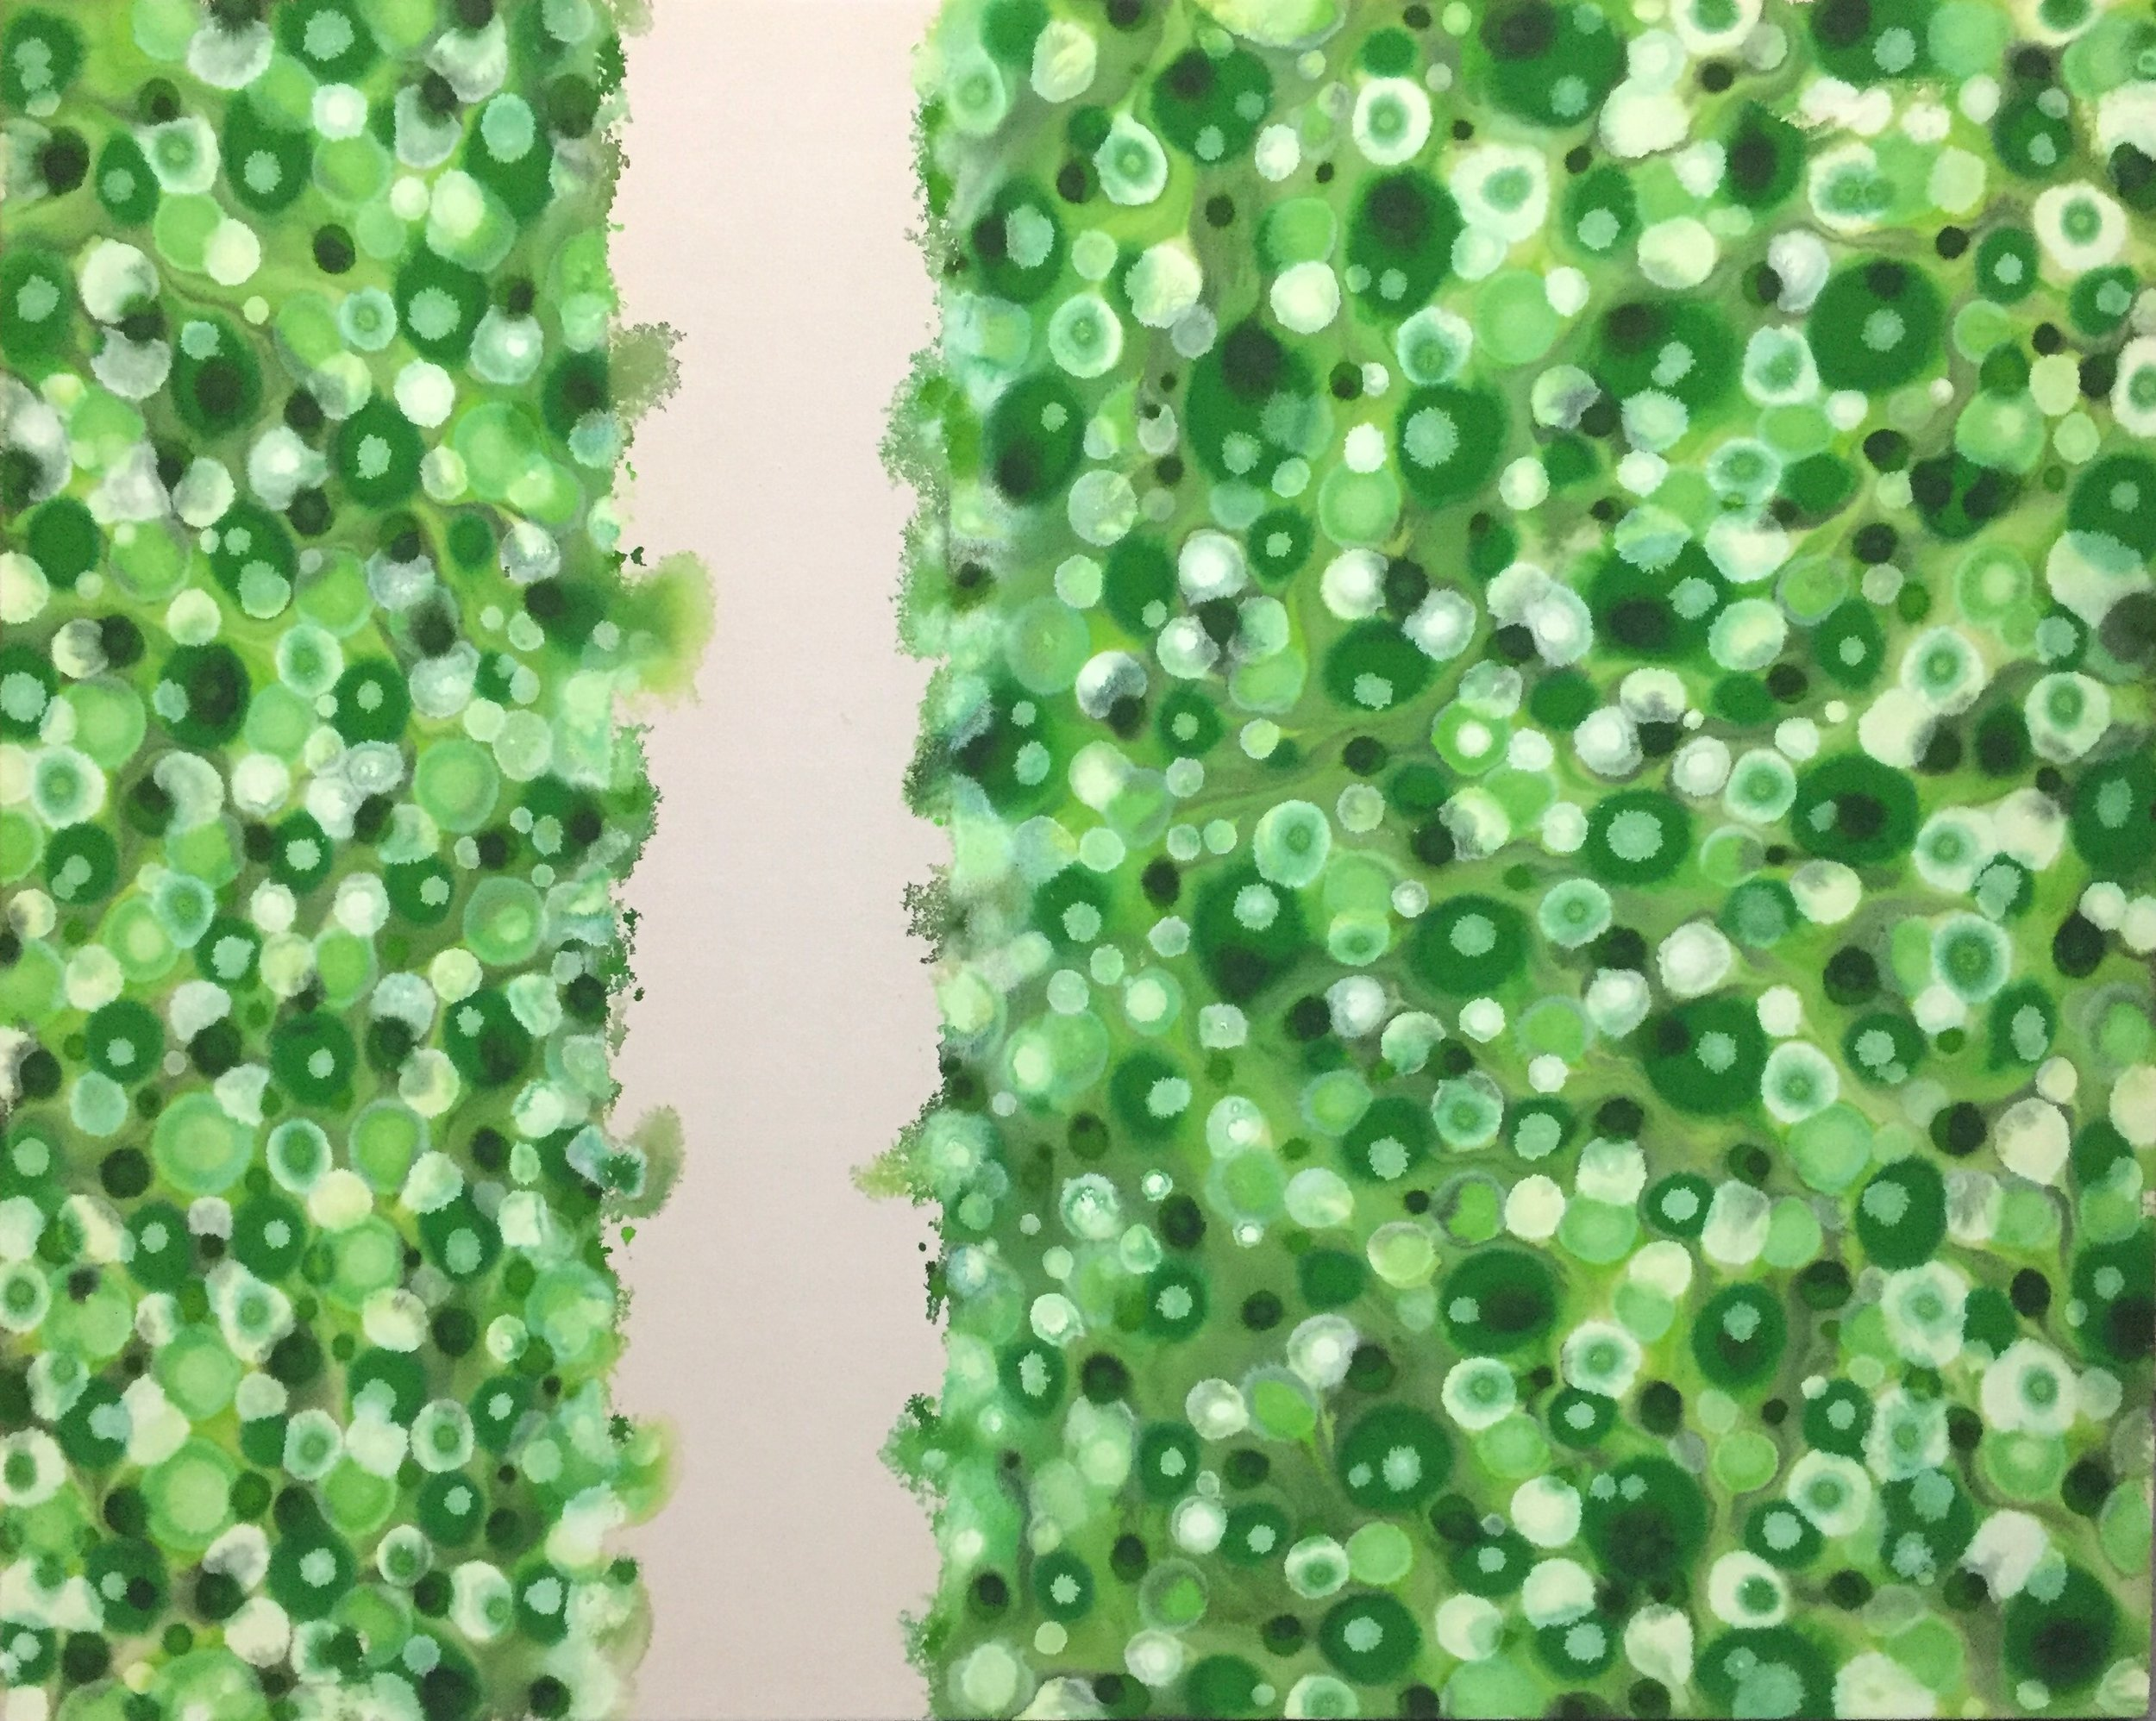 Verdant Veracity  , 2015, Acrylic on canvas, 48 x 60 in.